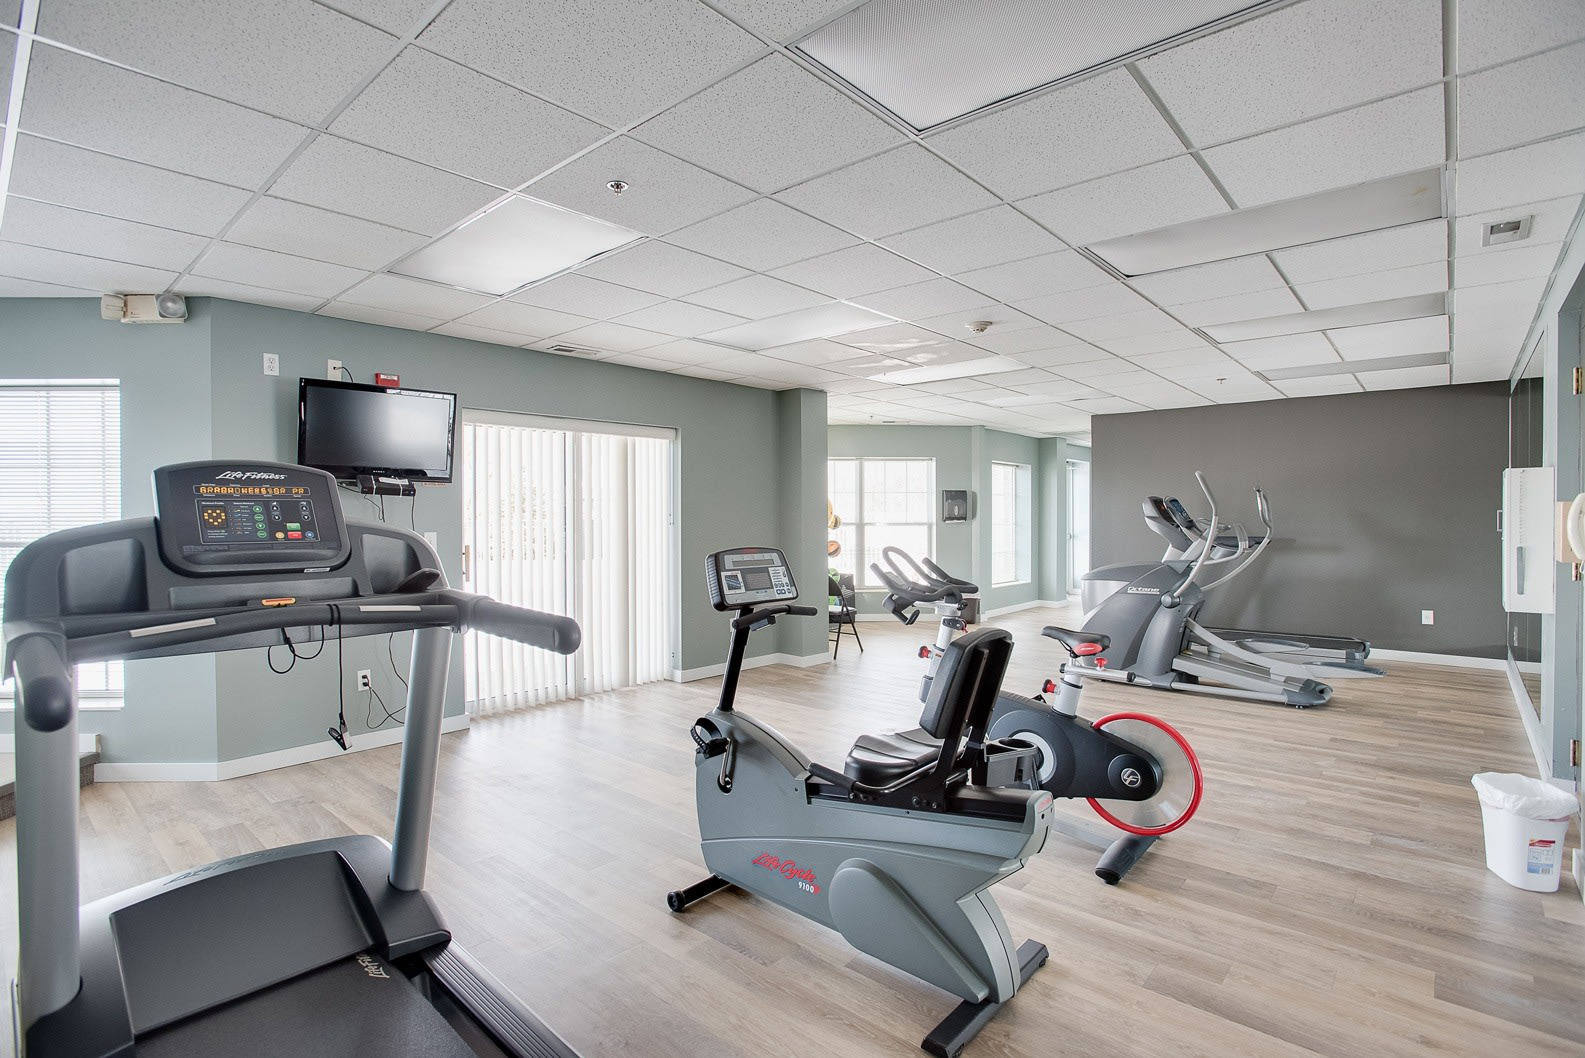 Provence Apartments fitness center in Burnsville MN